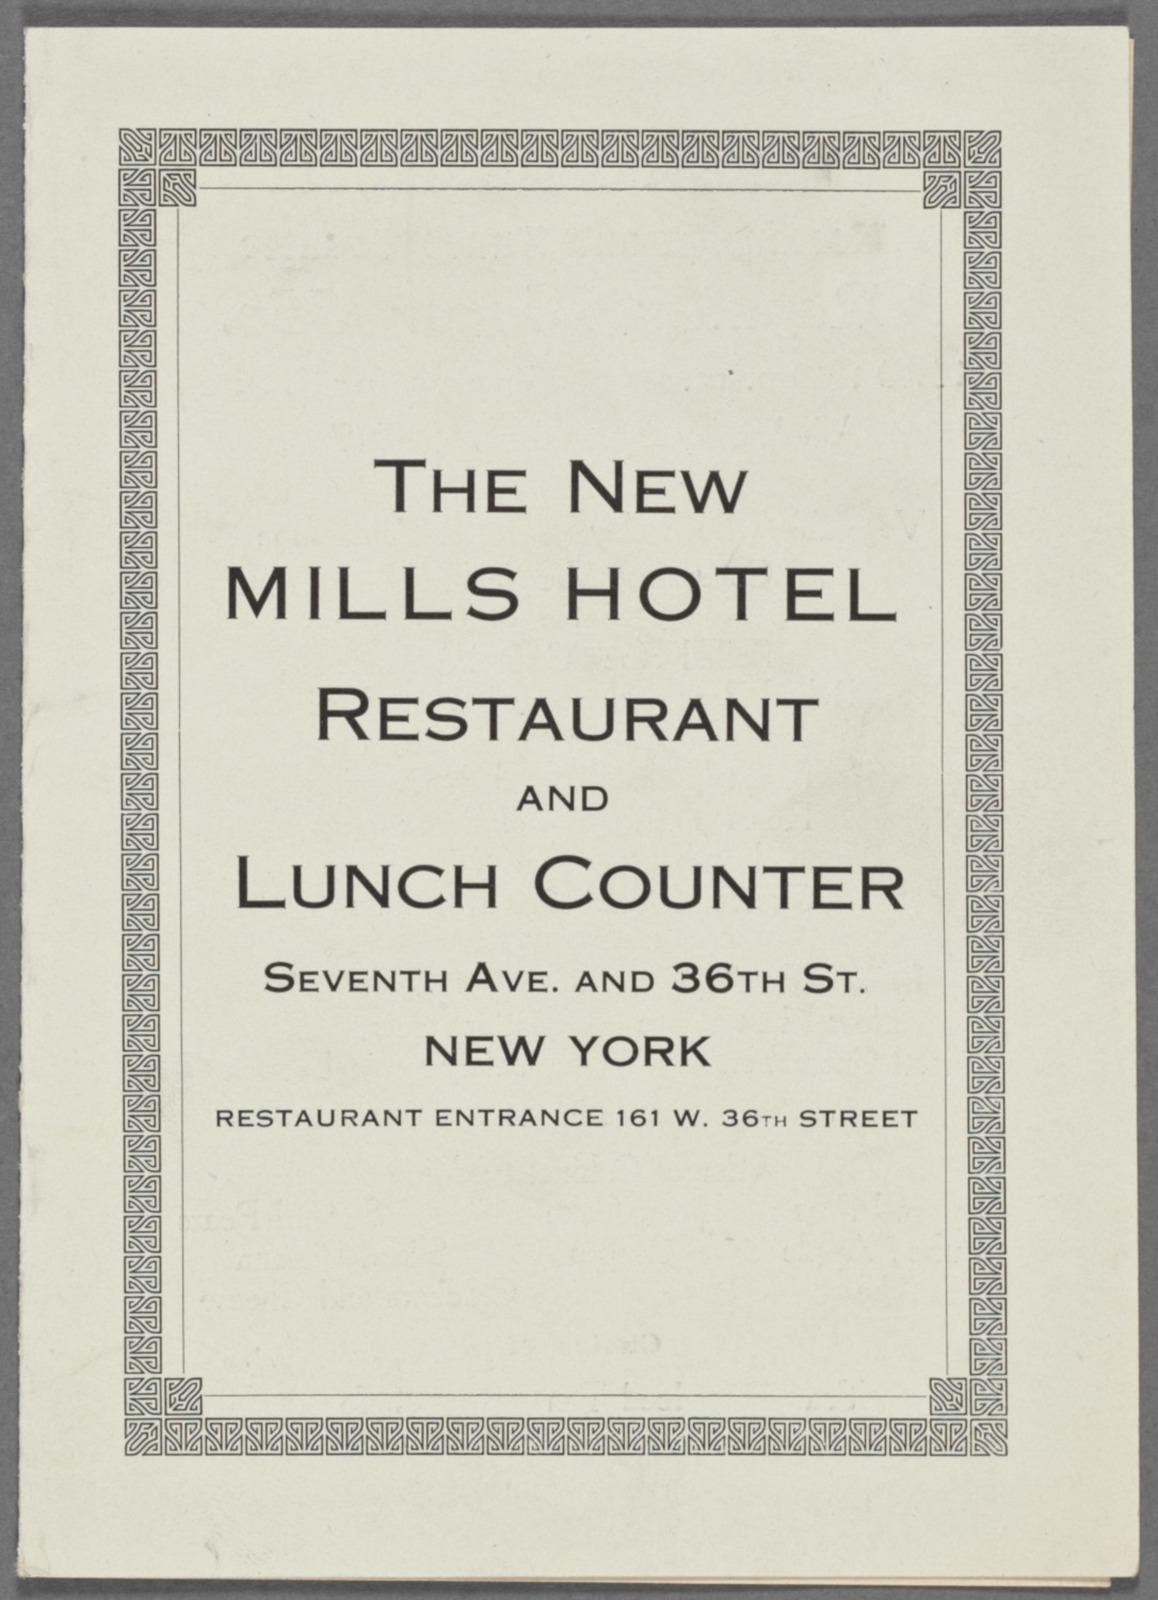 The New Mills Hotel Restaurant and Lunch Counter